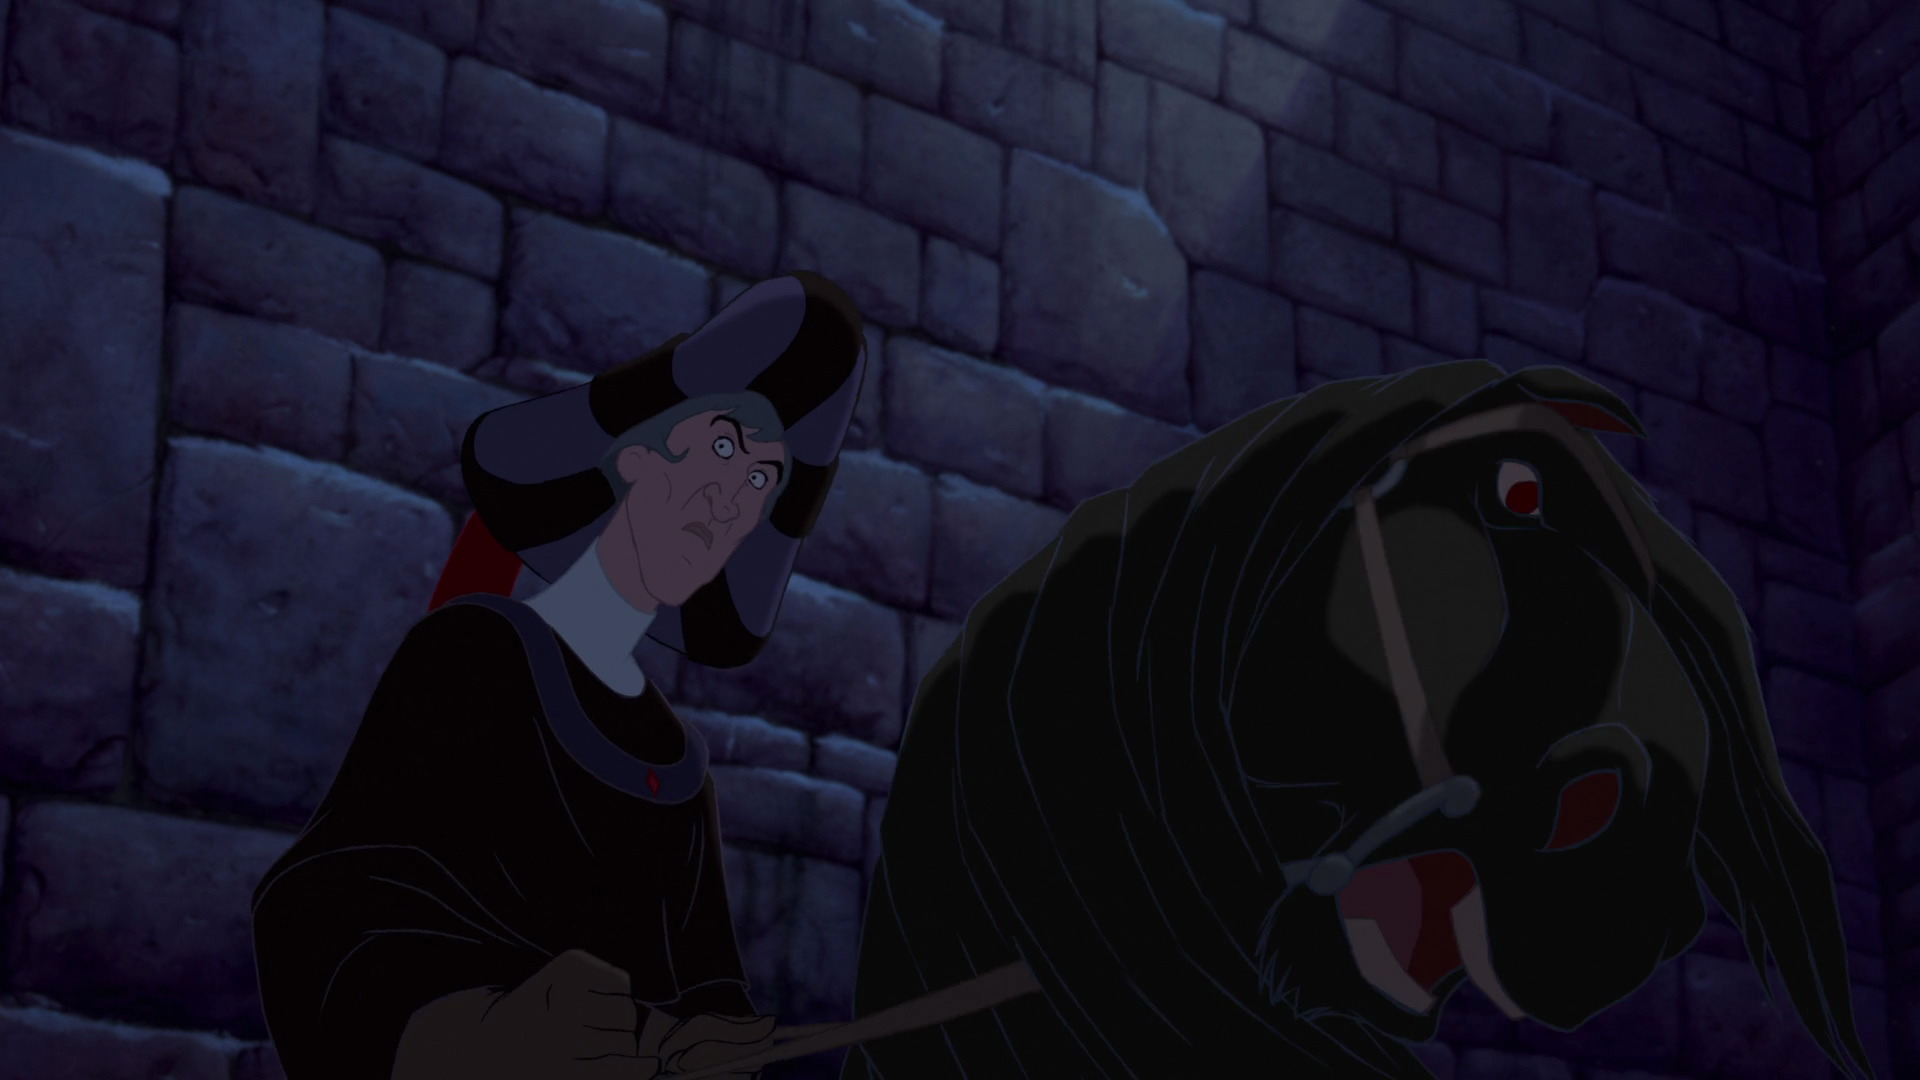 File:Judge Frollo.jpg